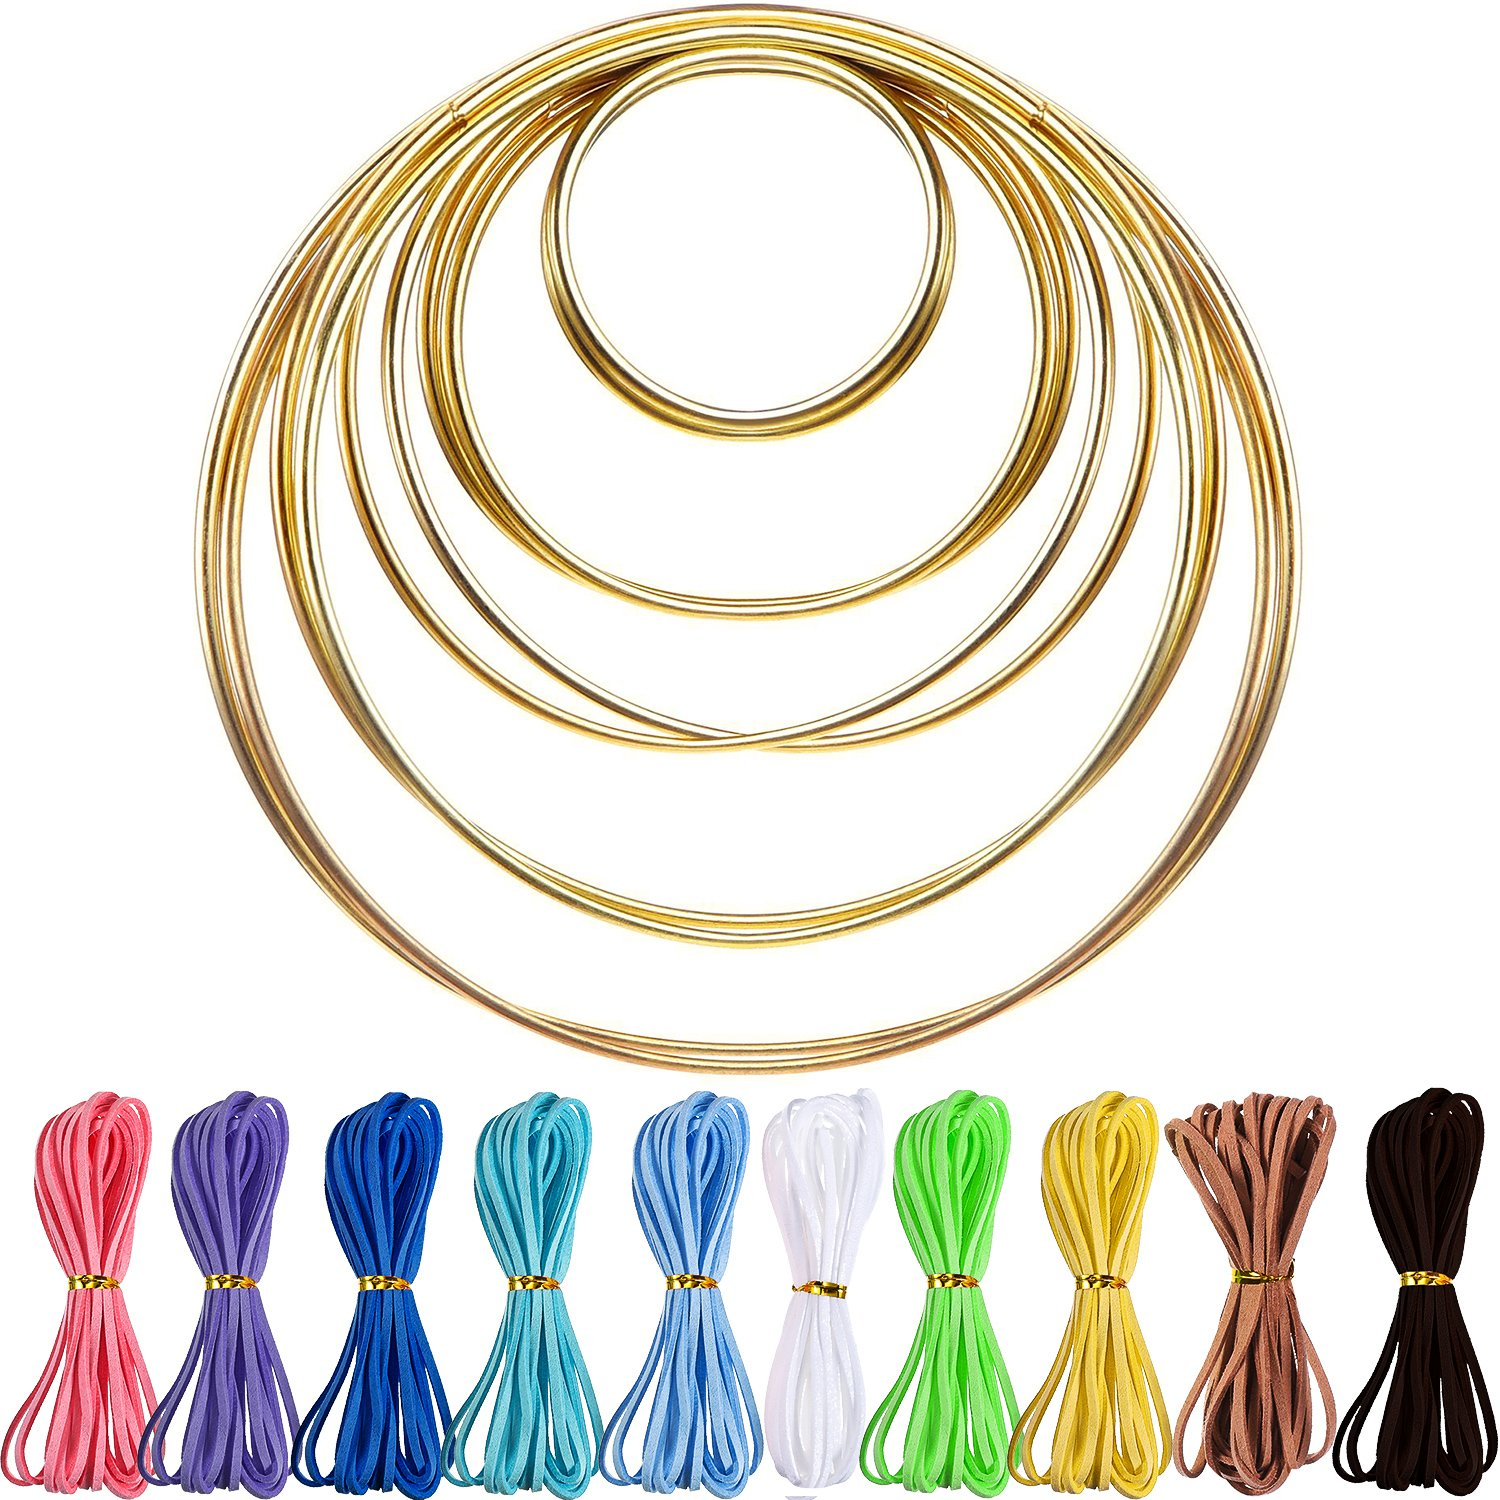 10 Pieces Metal Rings Hoops with 10 Pieces 3 mm Faux Suede Cord String for Dream Catcher Hestya